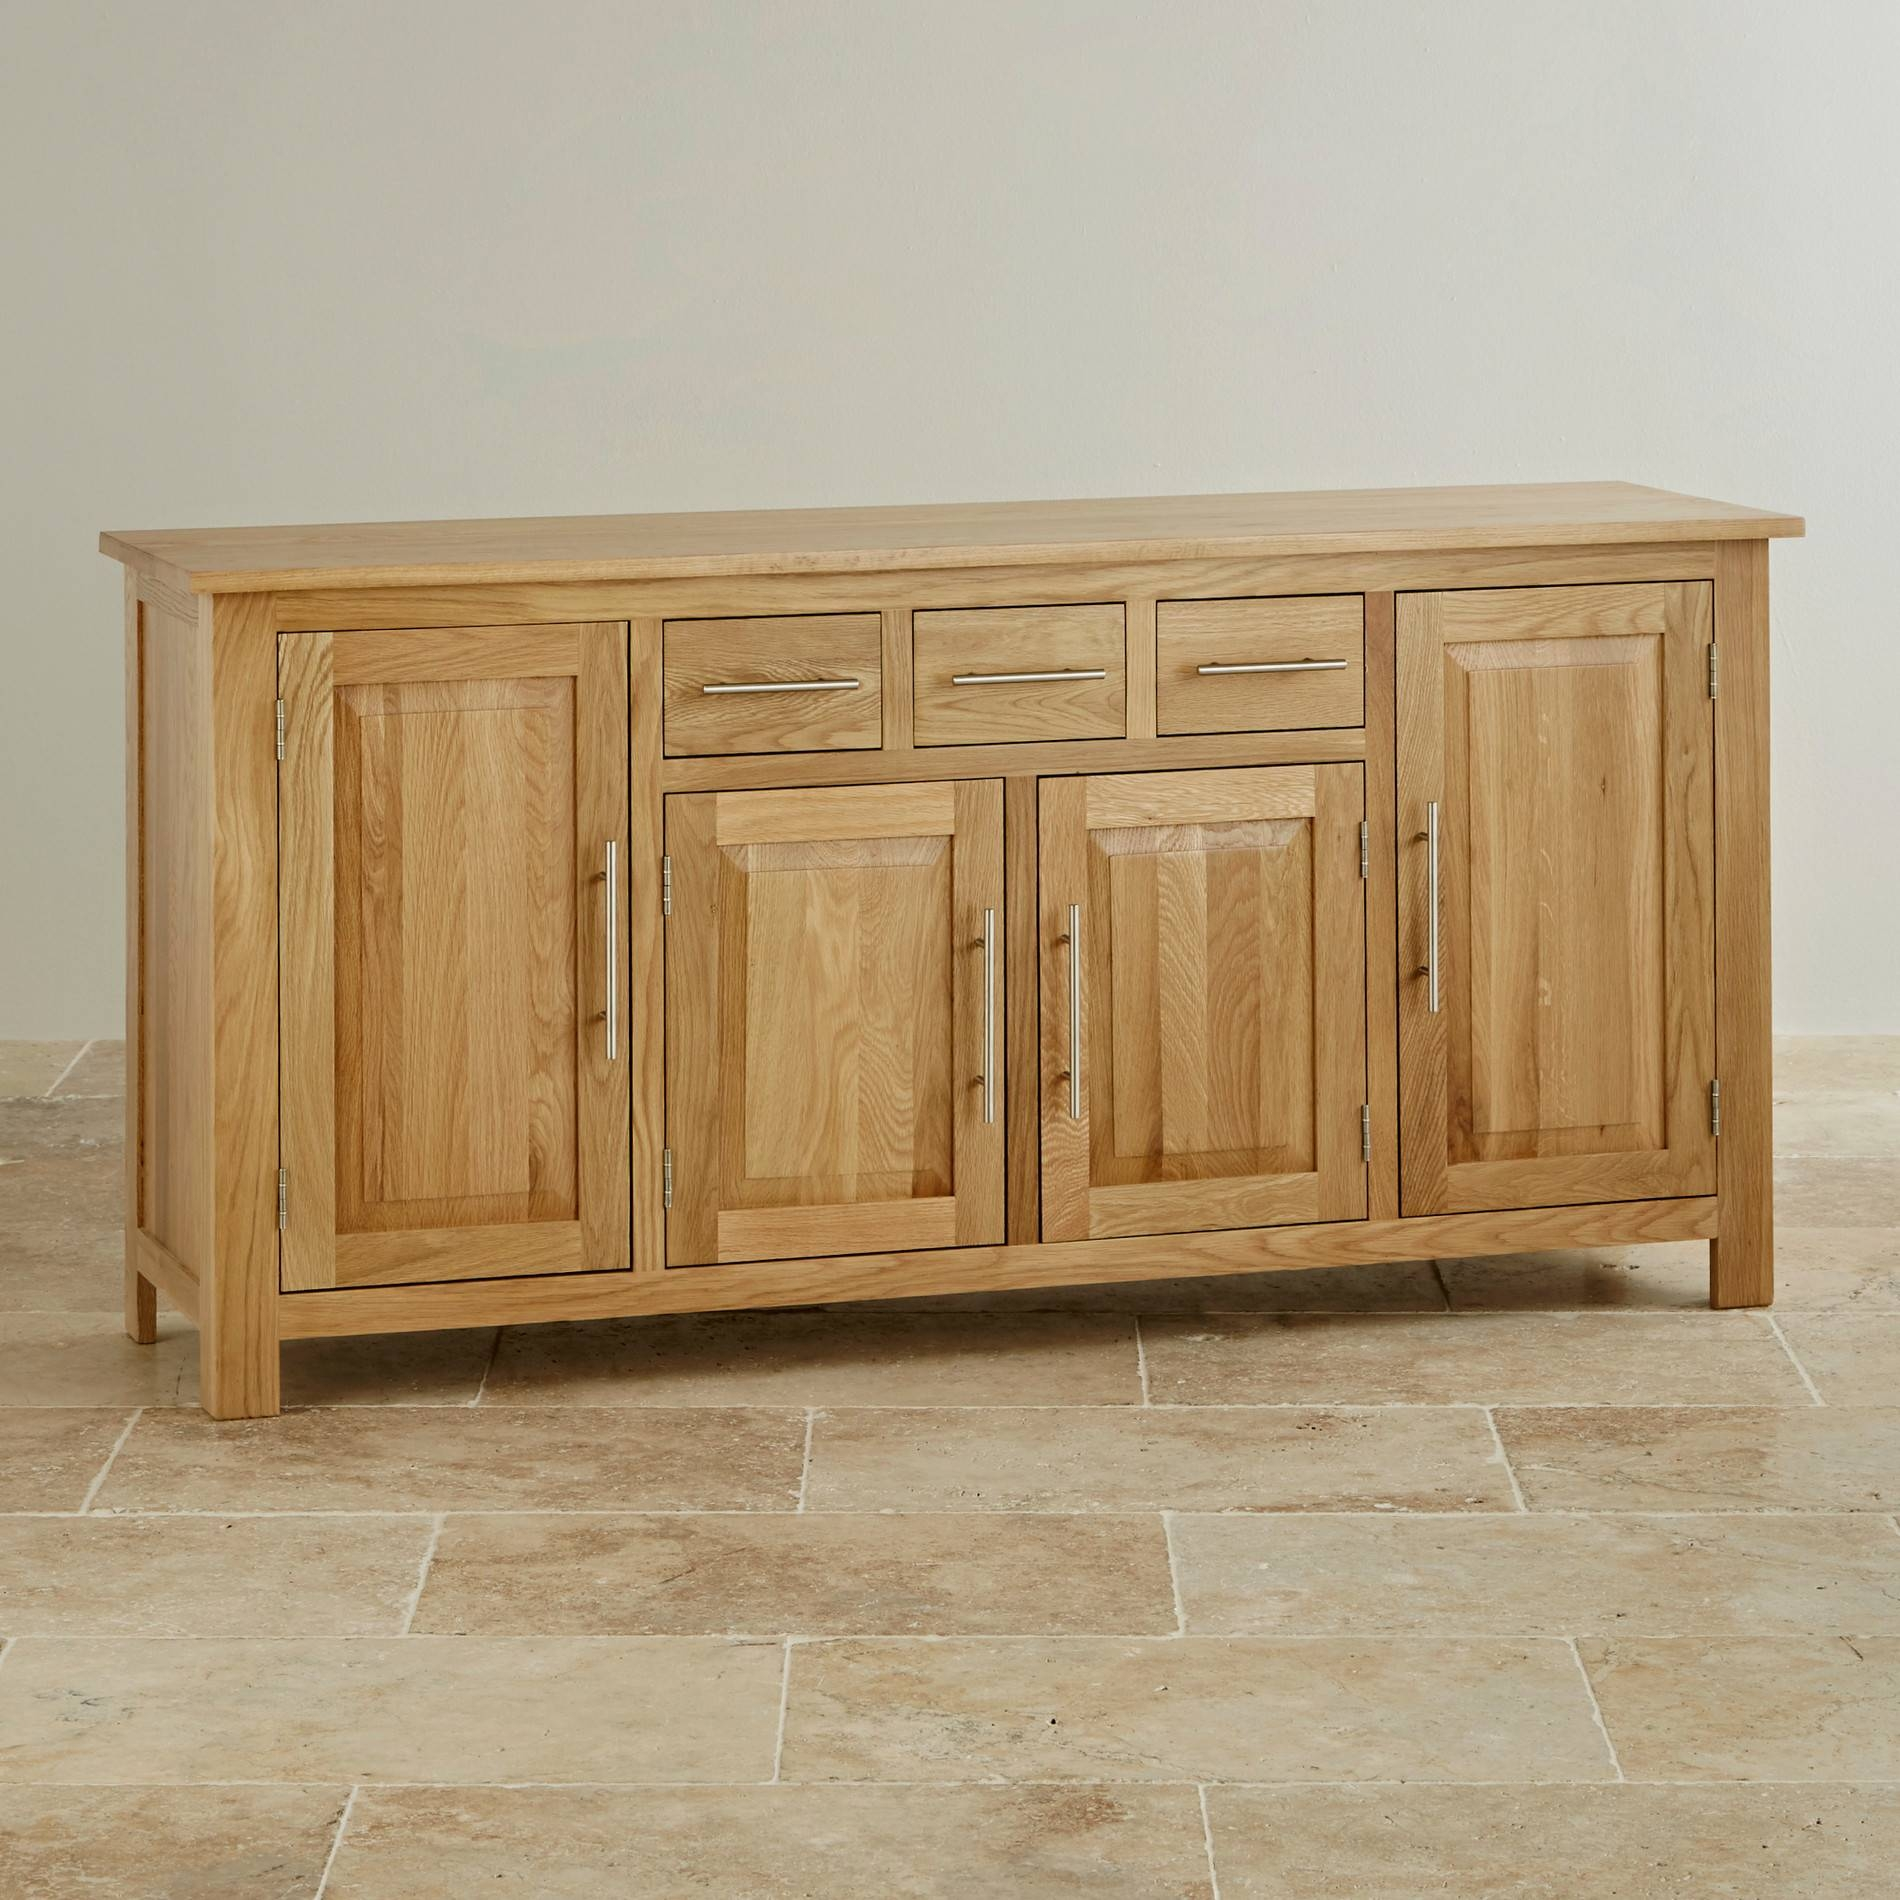 Rivermead Natural Solid Oak Large Sideboard | Oak Furniture Land In Solid Wood Sideboards (View 9 of 15)